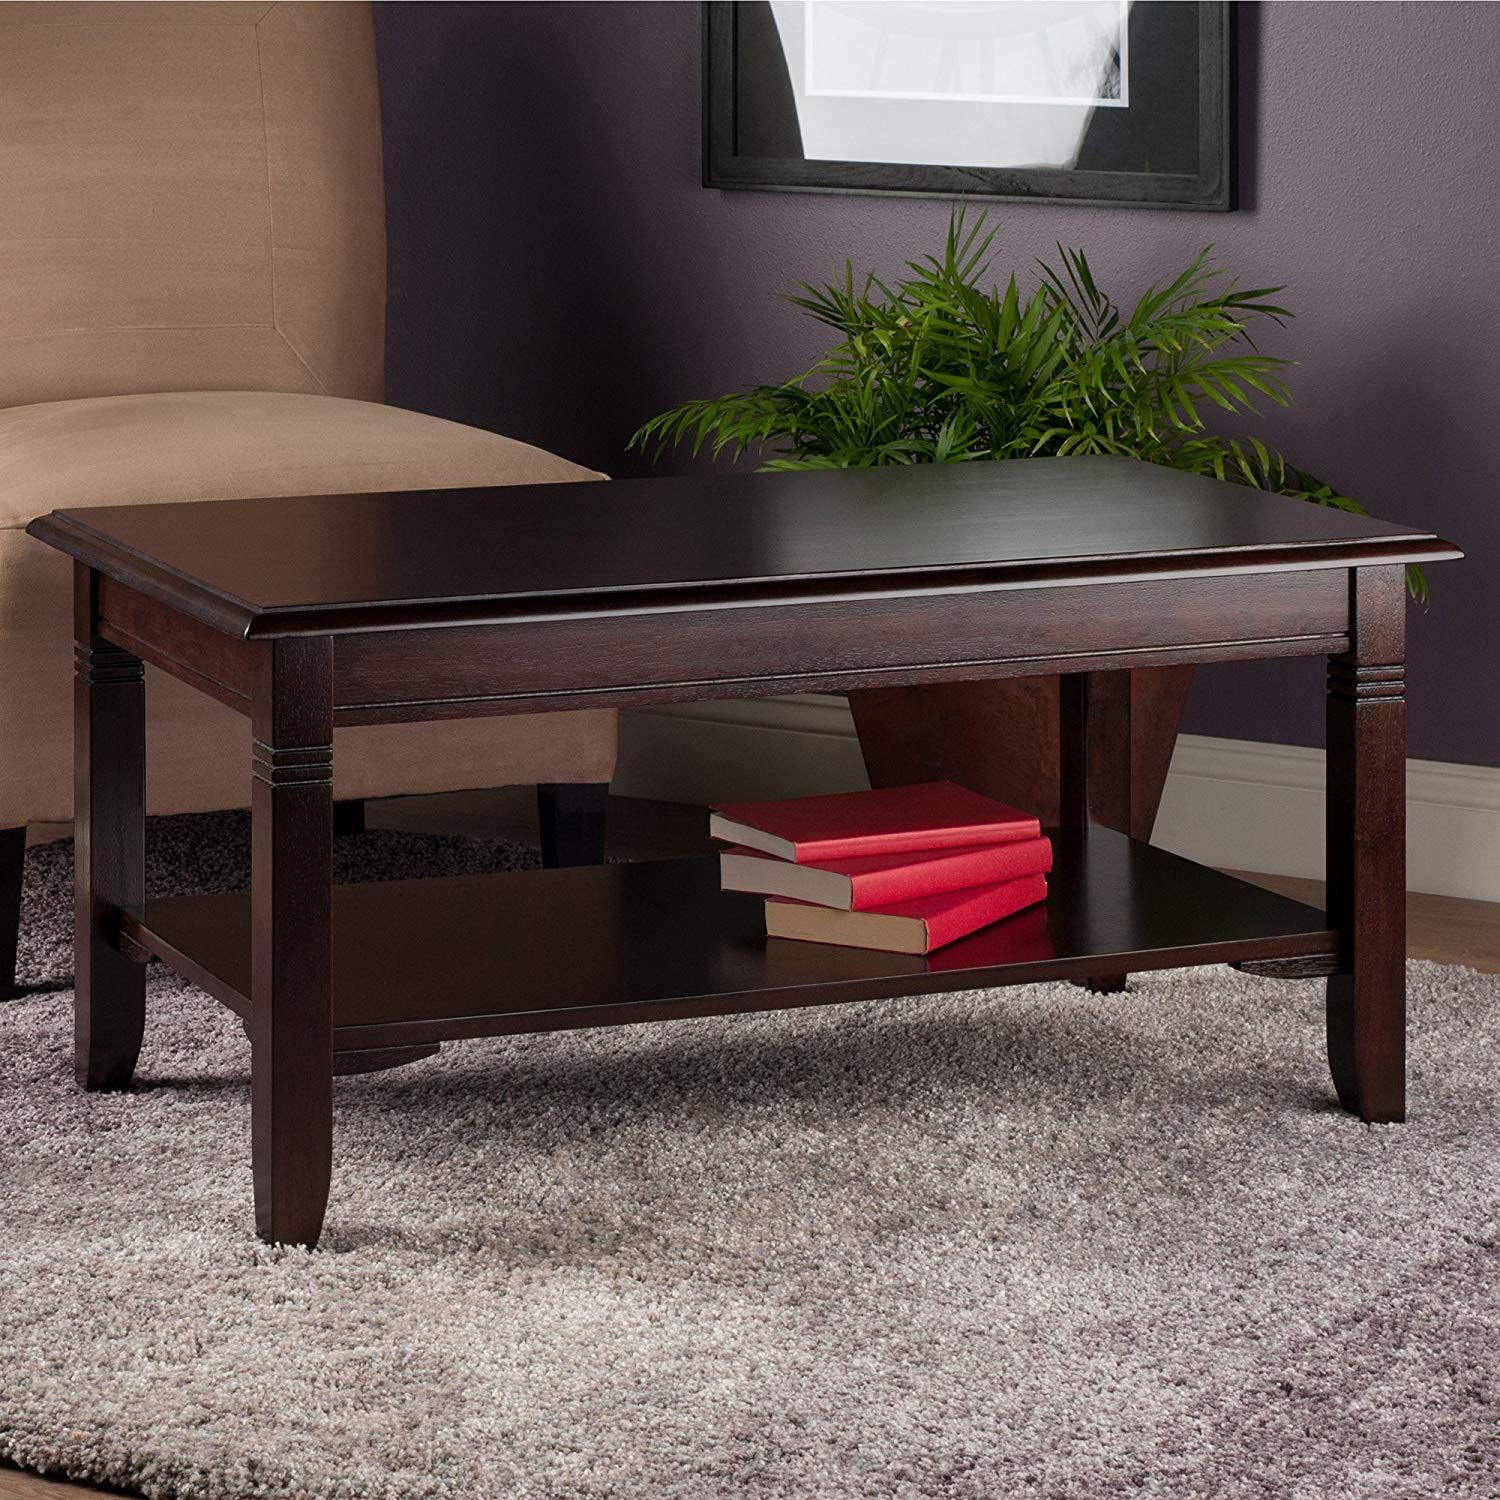 40 Incredibly Cheap Coffee Tables You Can Buy For Under 100 In